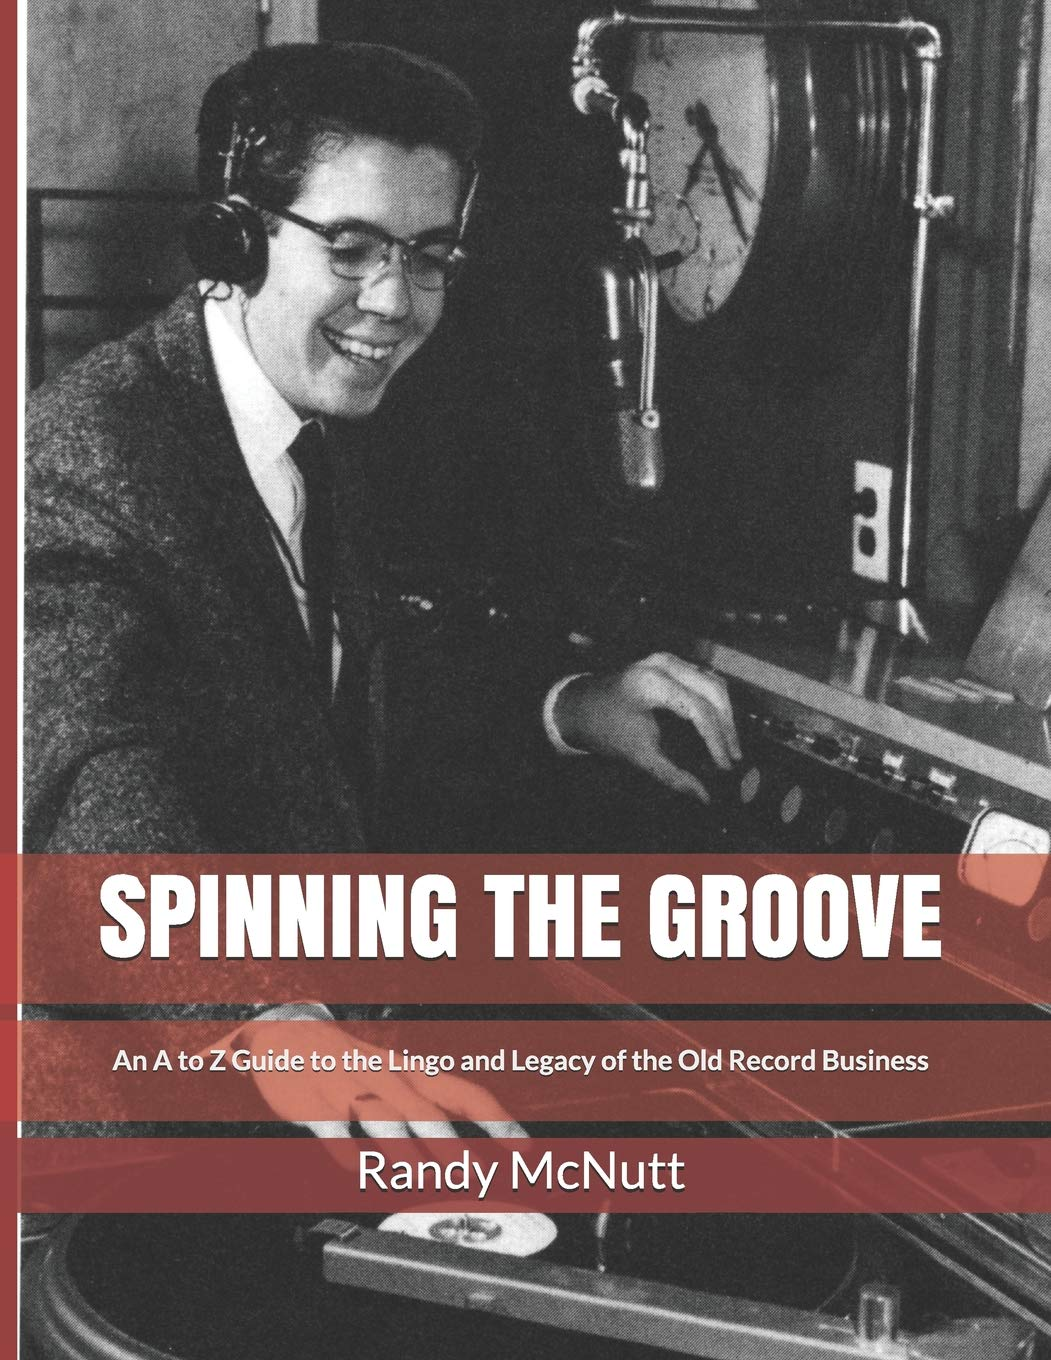 Spinning the Groove: An A to Z Guide to the Lingo and Legacy of ...